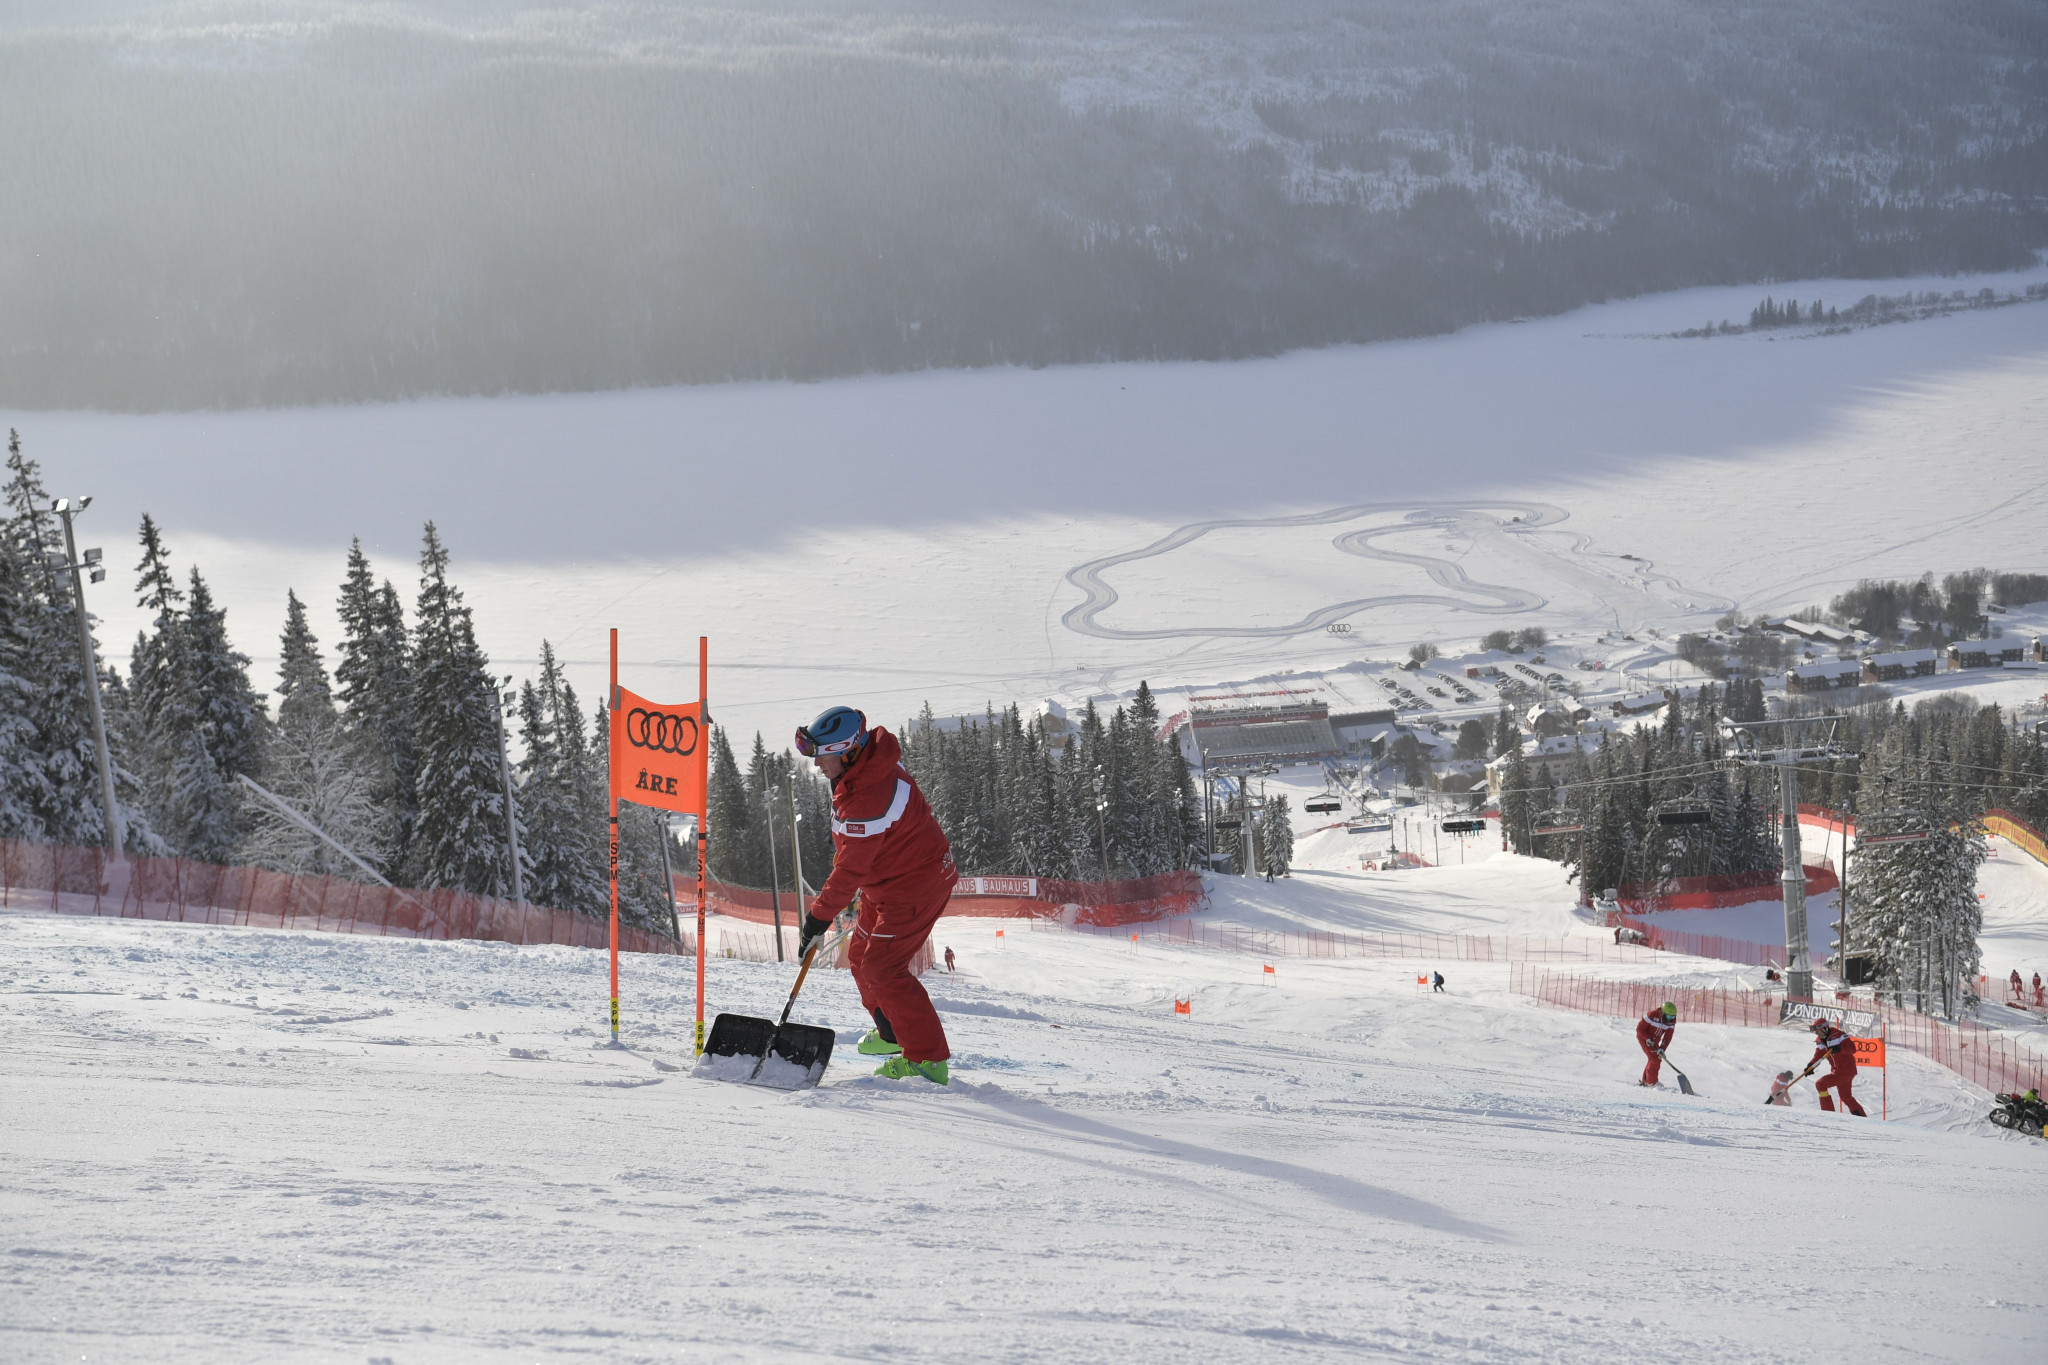 Åre is bidding to host the 2026 Winter Olympic and Paralympic Games alongside Stockholm ©Getty Images